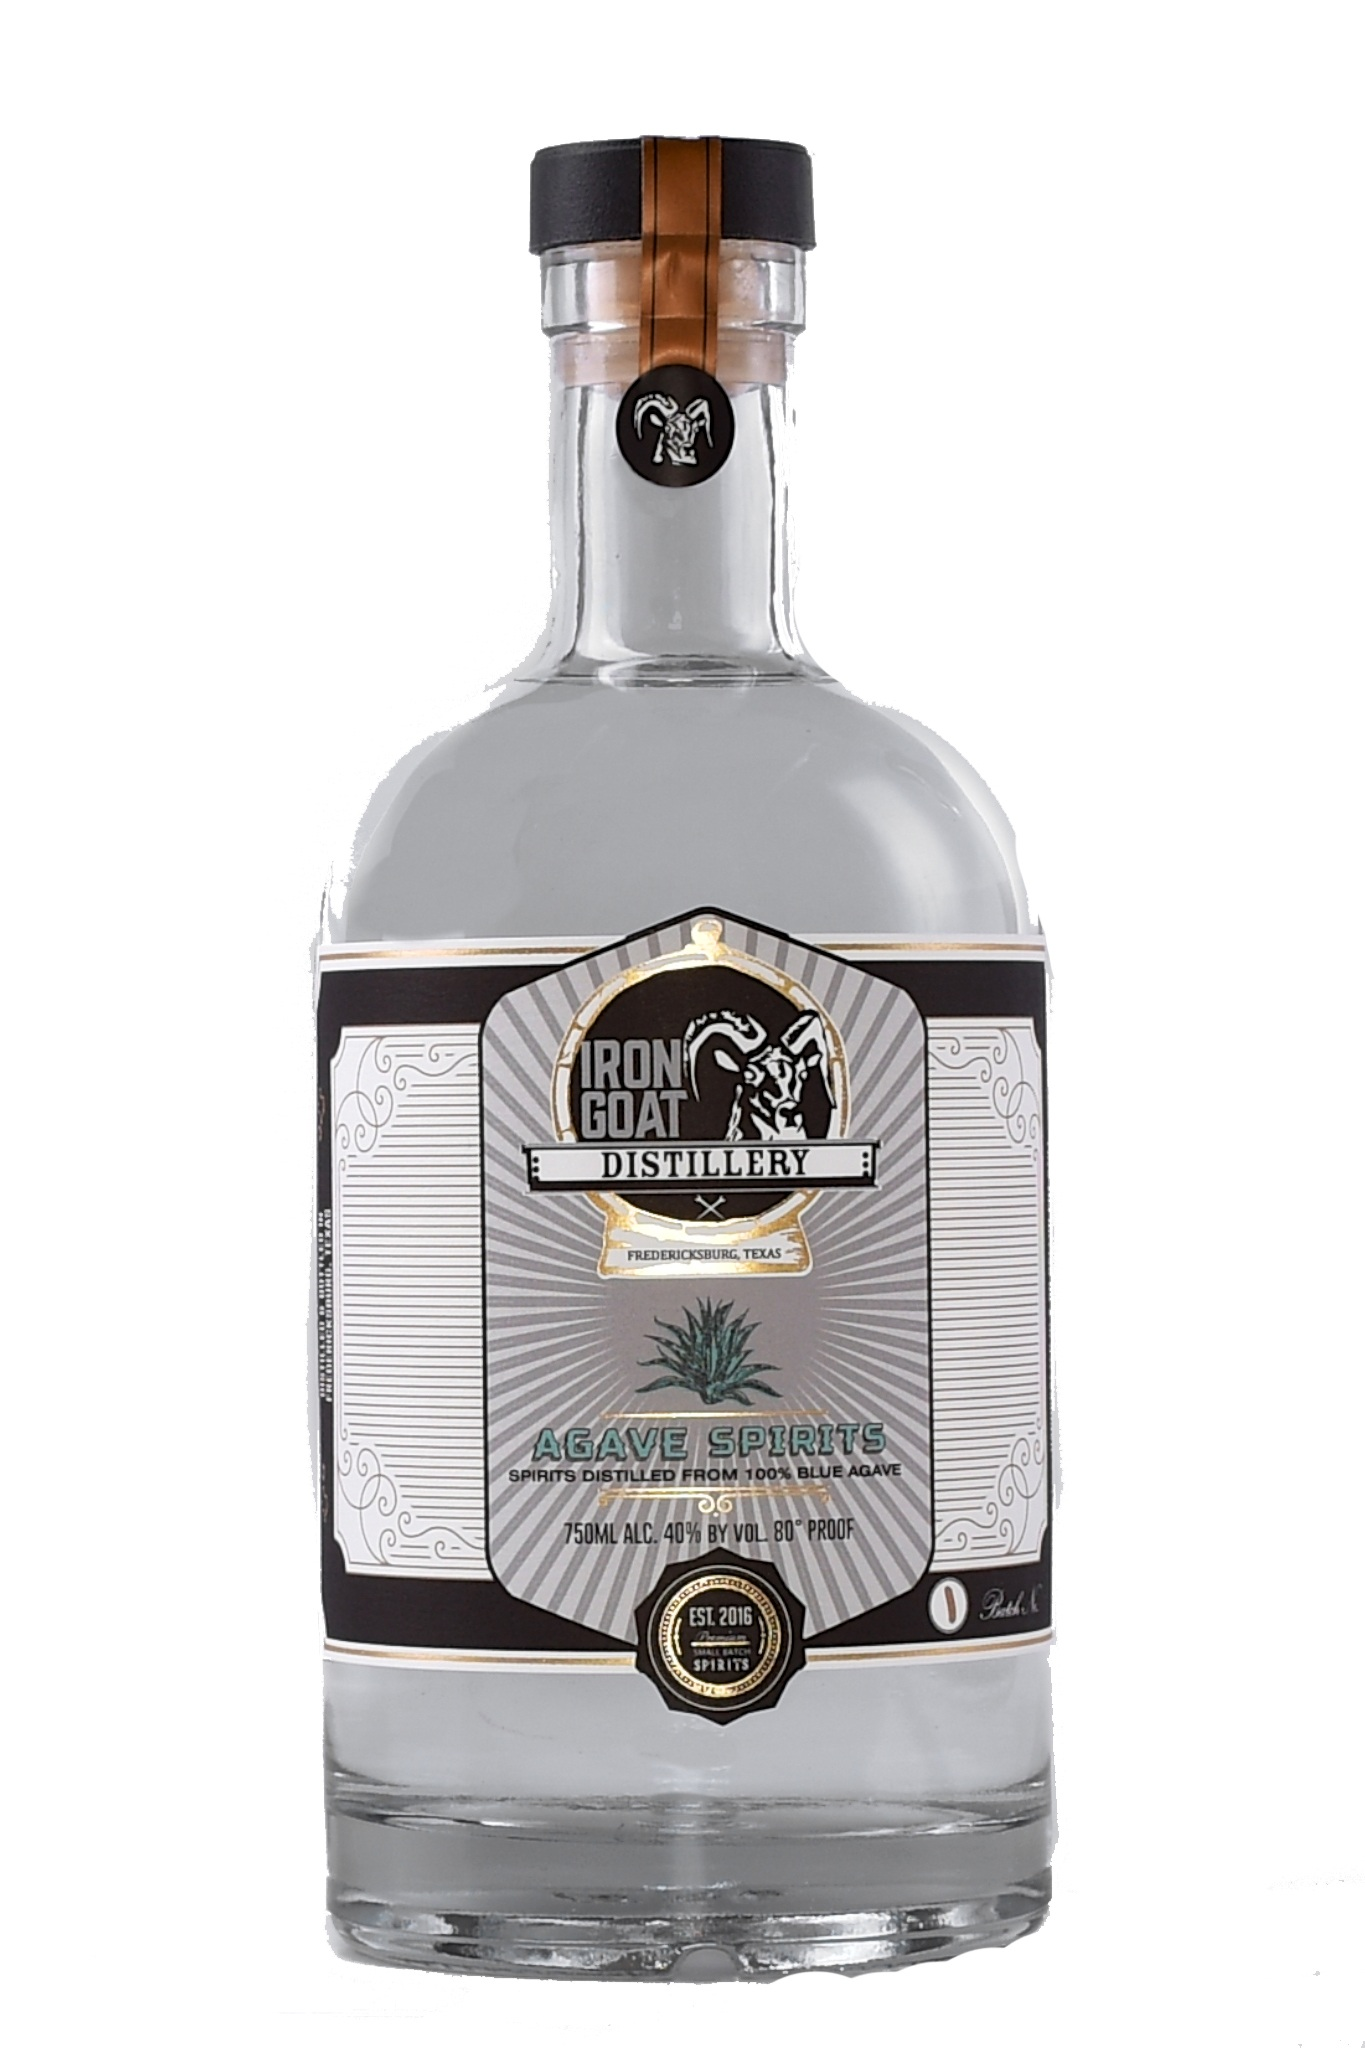 agave spirit (silver) - If you enjoy Tequila, then you will enjoy our Agave Spirit. Since it is produced in the United States, we can't call it Tequila, but it is made from the same ingredients as top shelf Tequila Brands. 100% Blue Agave. It is very smooth and is great for sipping or mixing into your favorite tequila based cocktails.